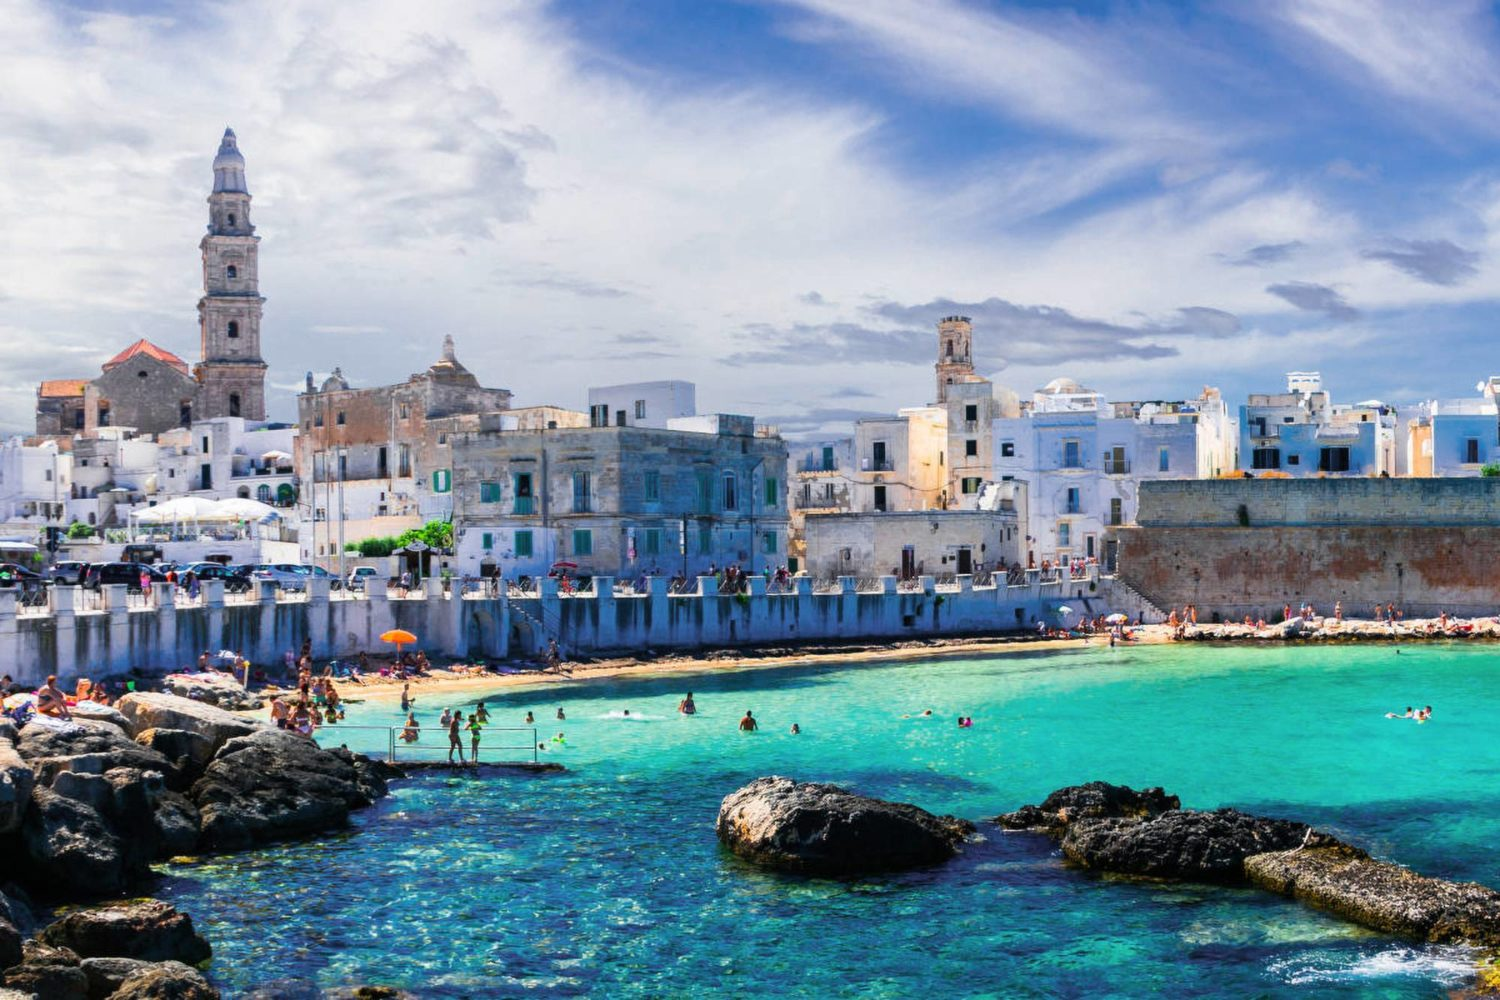 Monopoli guided tour